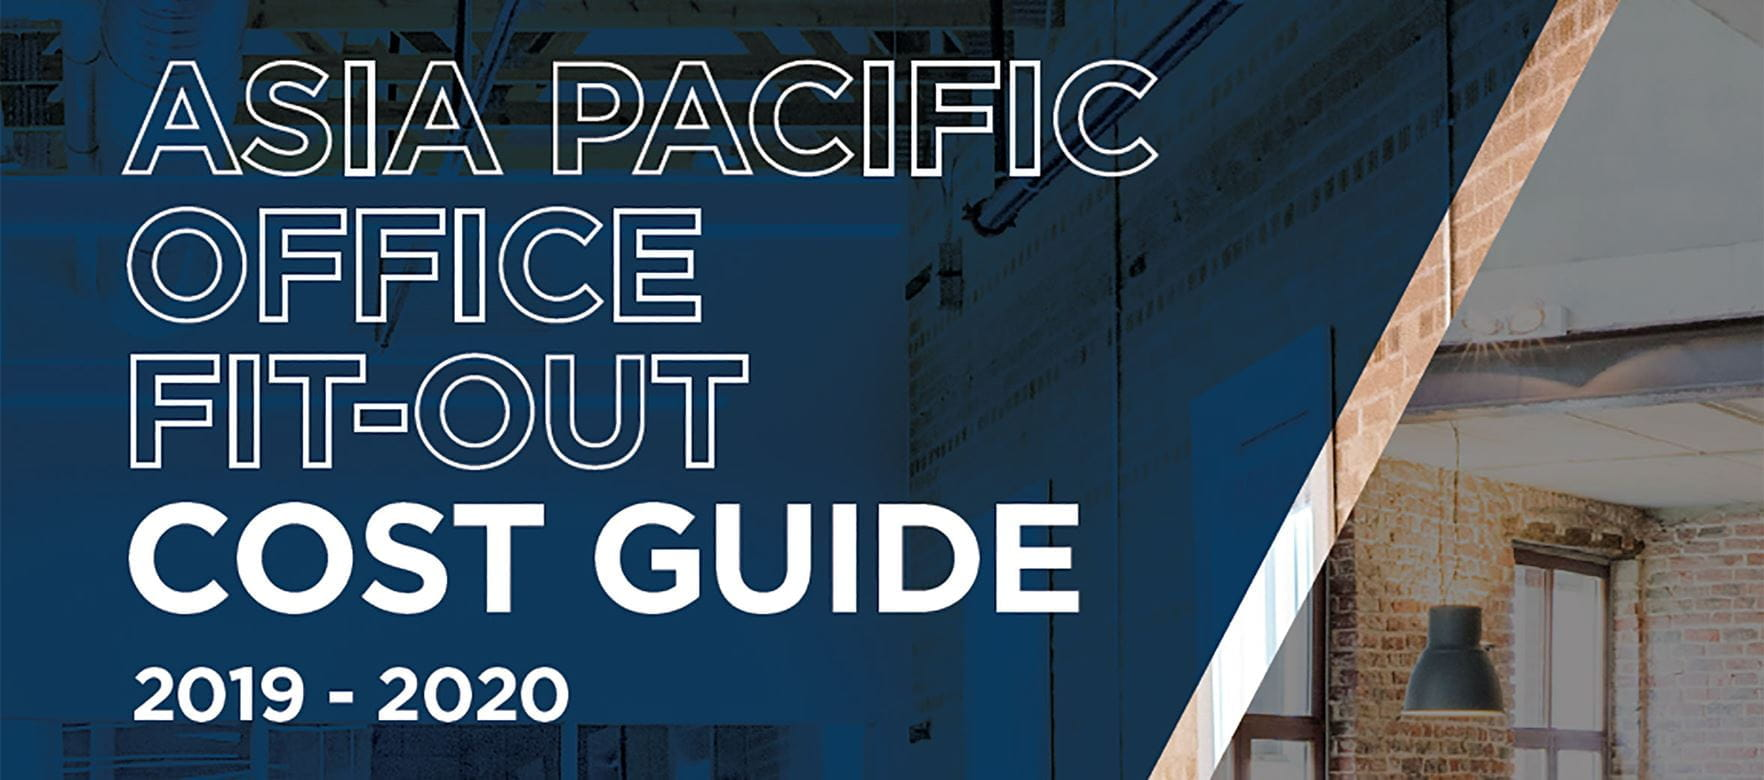 Get The Most From Your Asia Pacific Office Fit-out